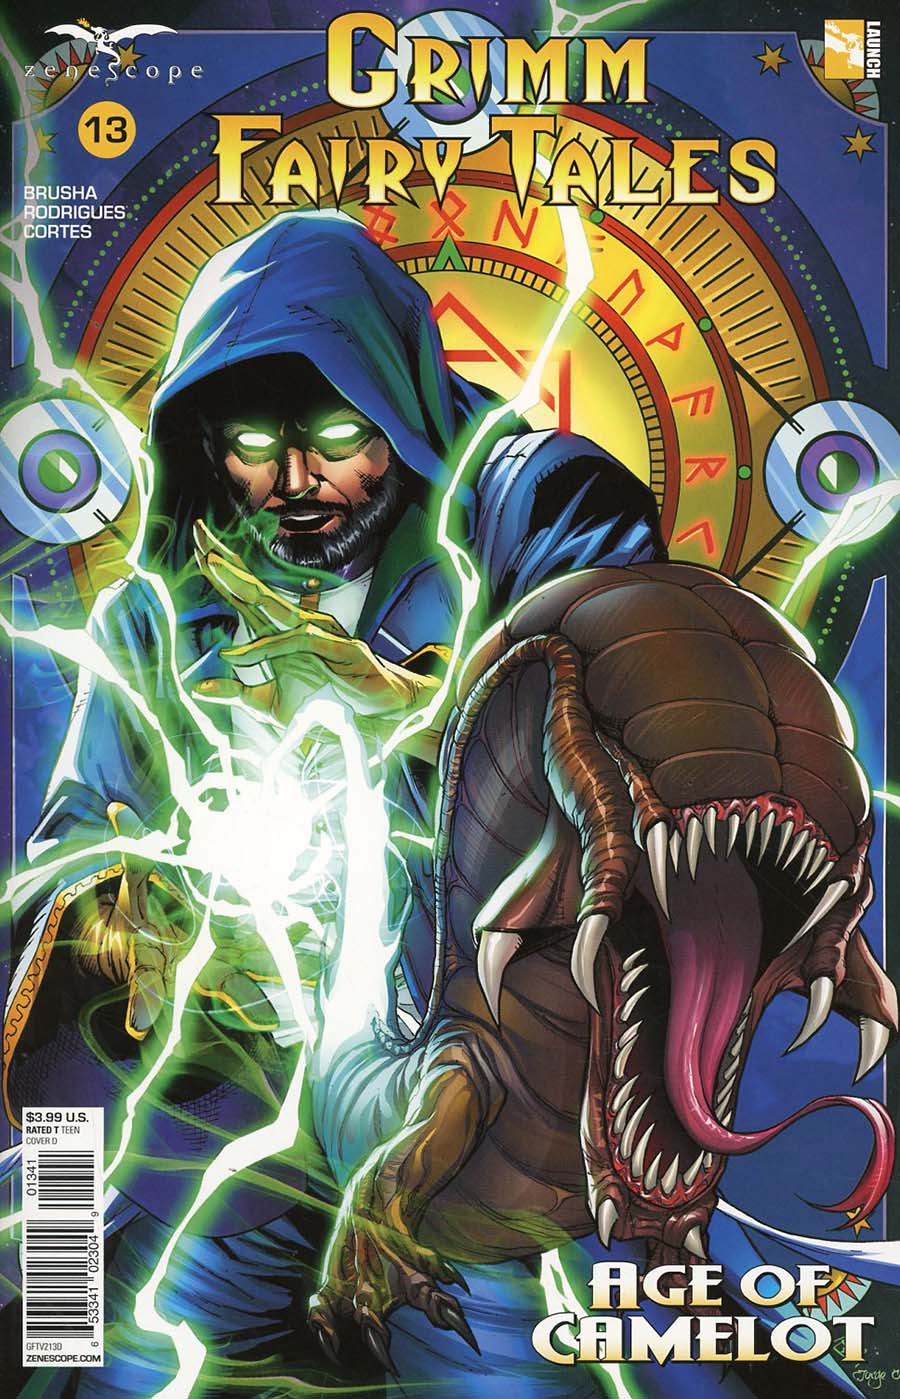 Grimm Fairy Tales Vol 2 #13 Cover D Anthony Spay